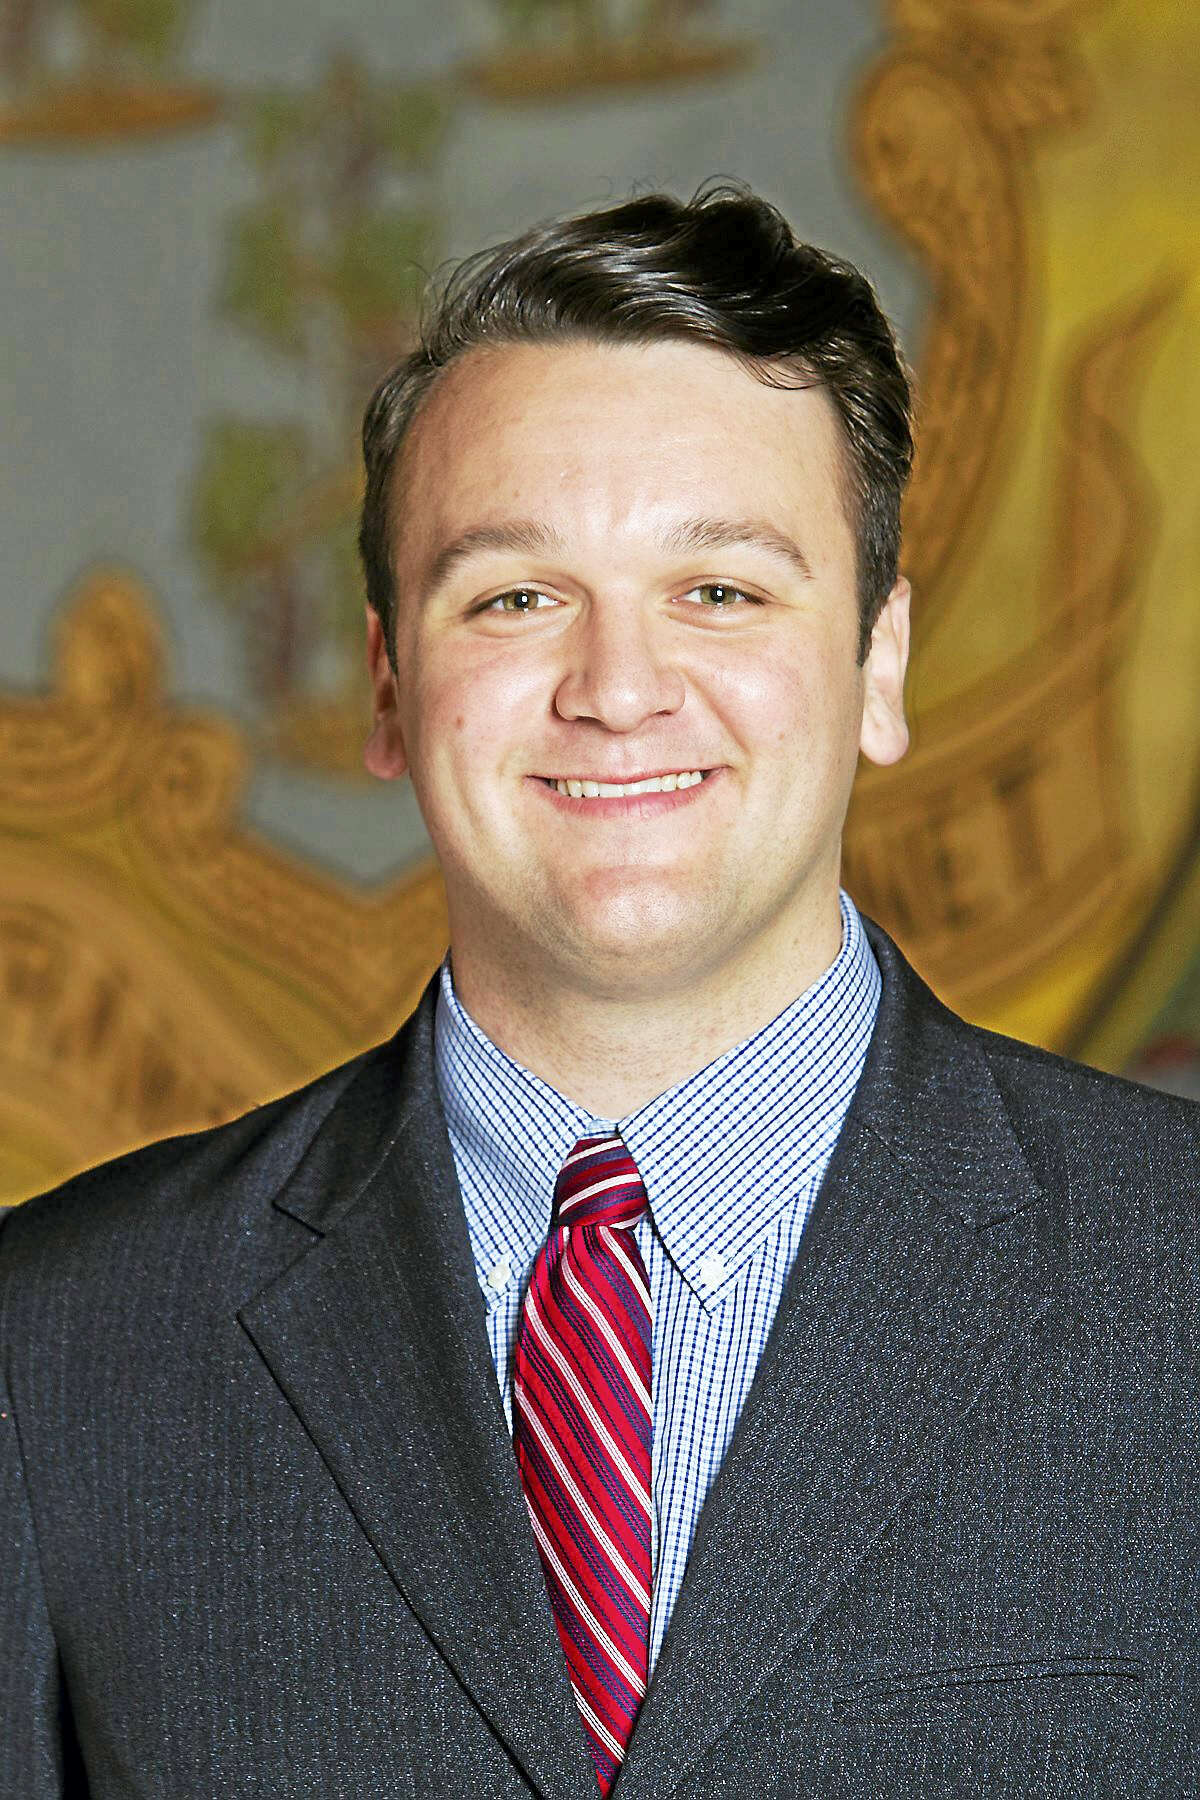 State Rep. Jesse MacLachlan